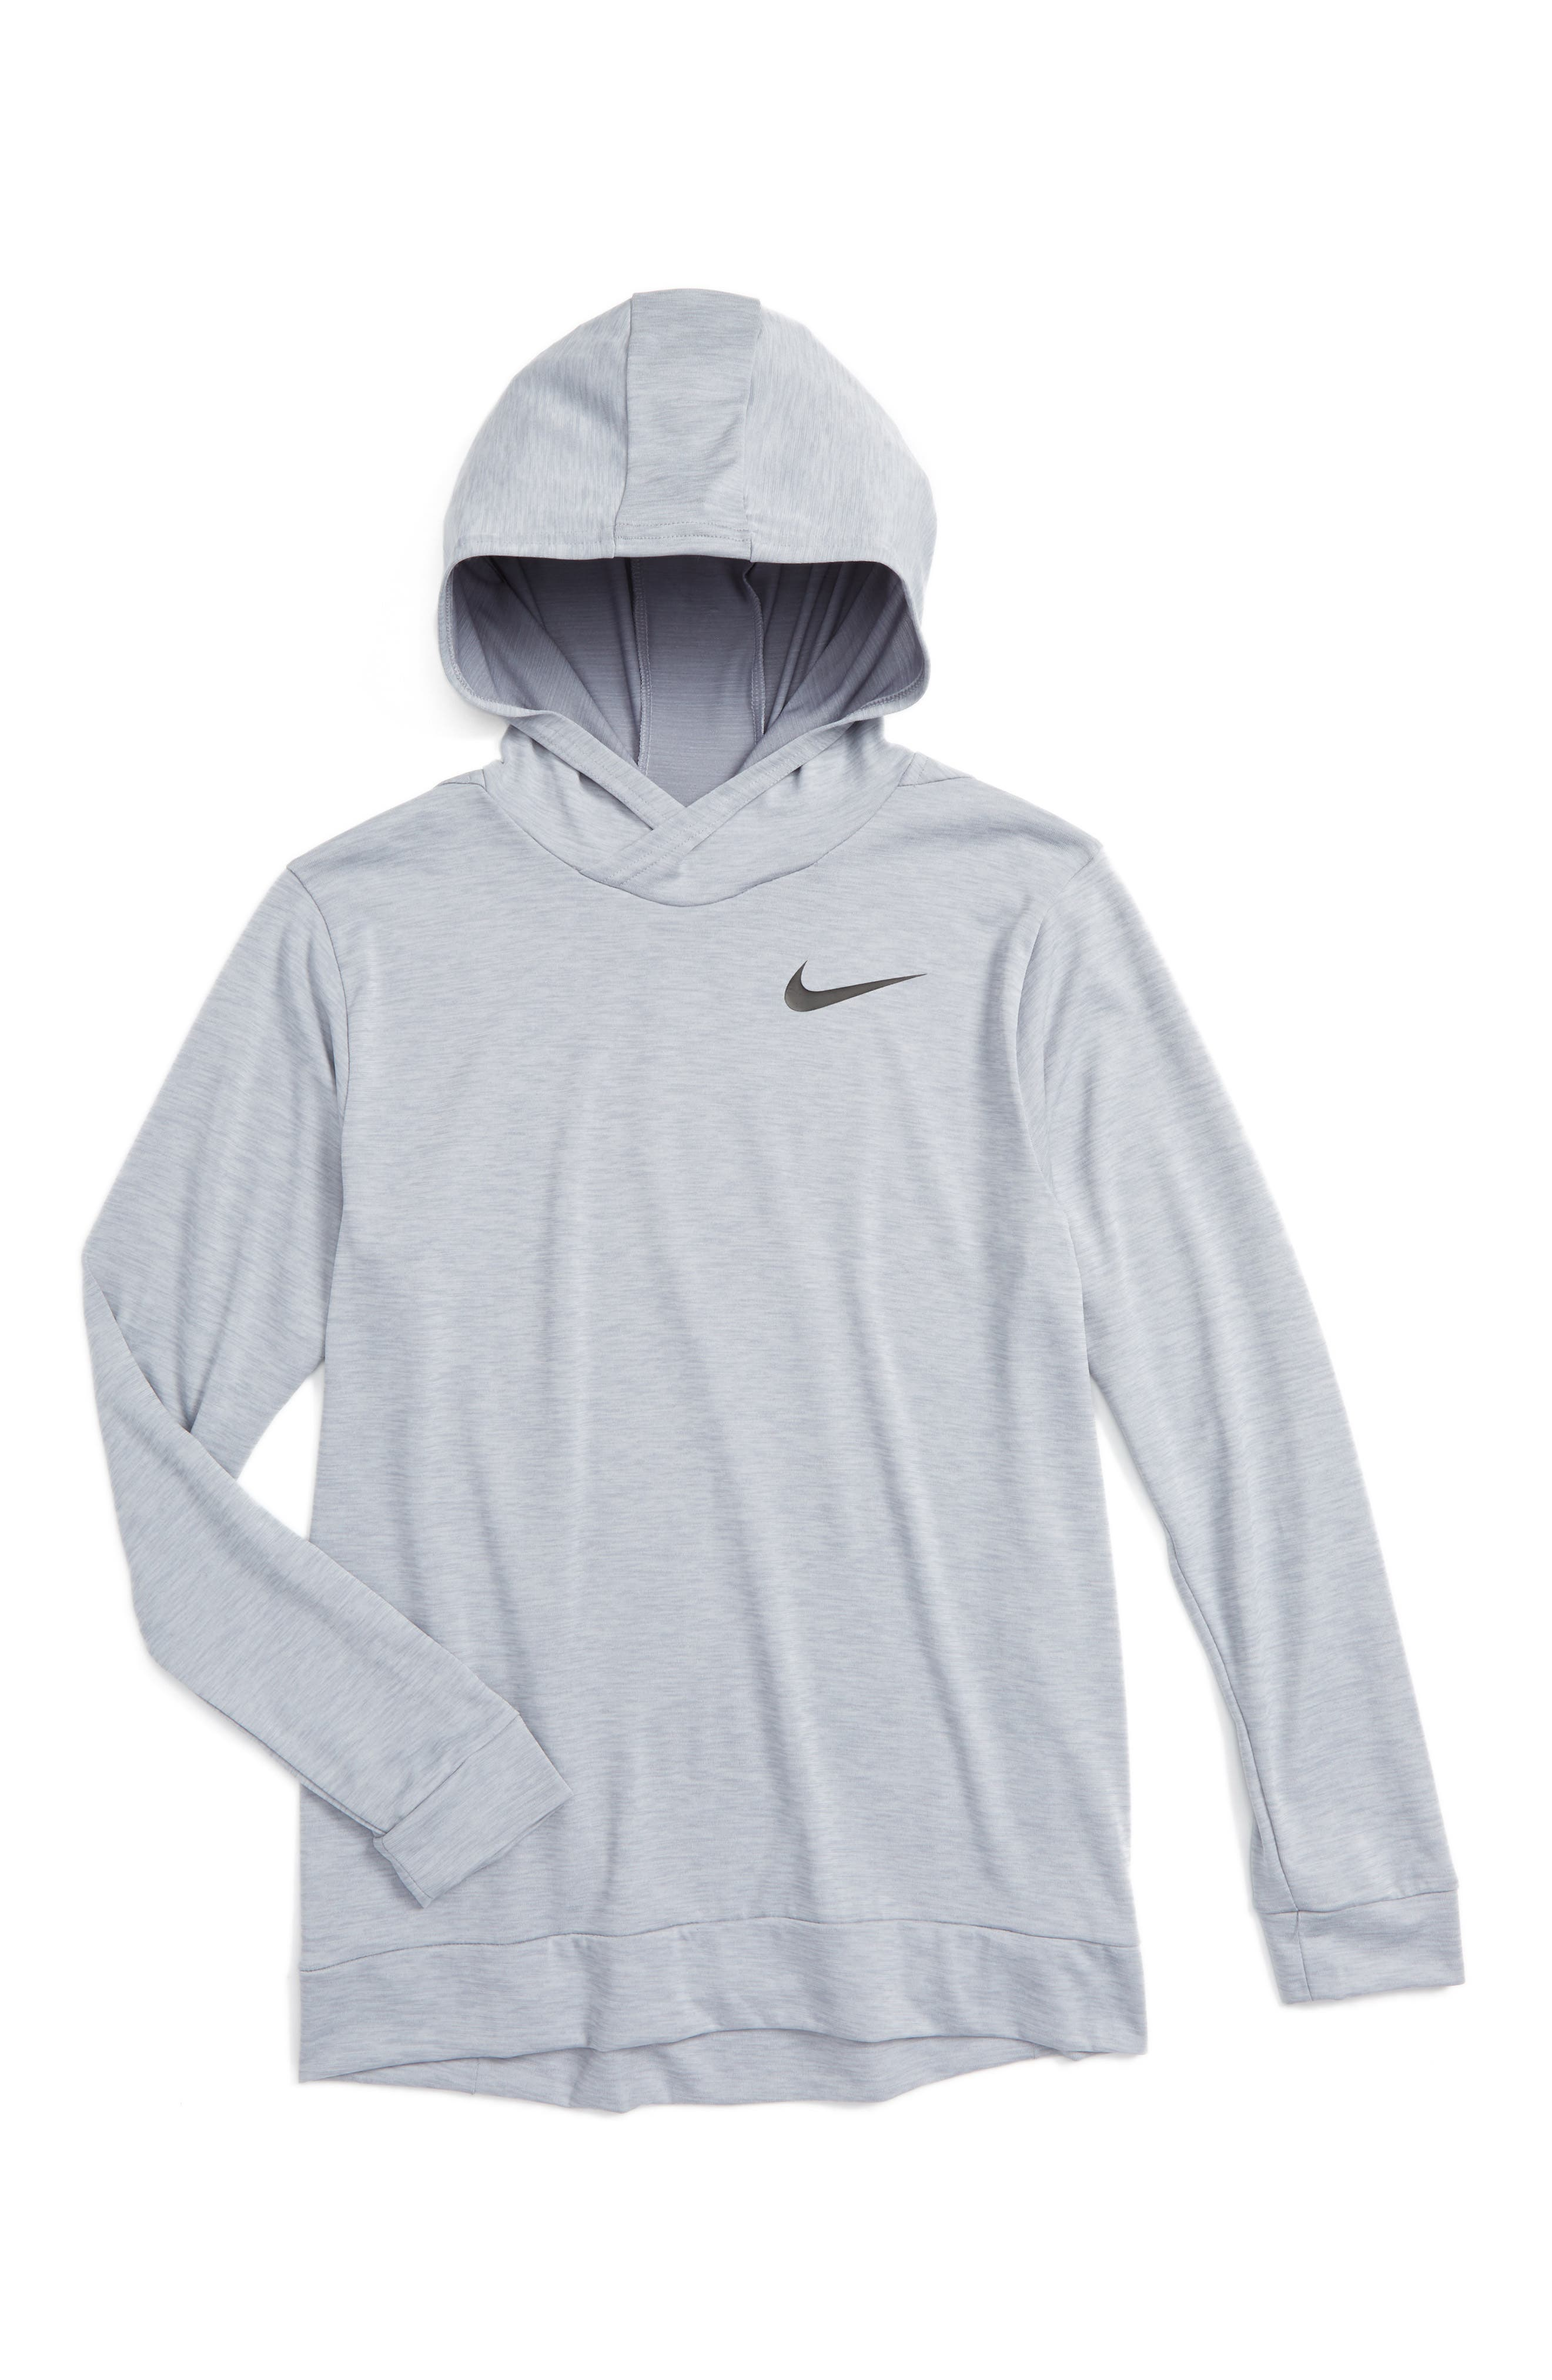 Nike Dri-FIT Training Hooded T-Shirt (Little Boys & Big Boys)